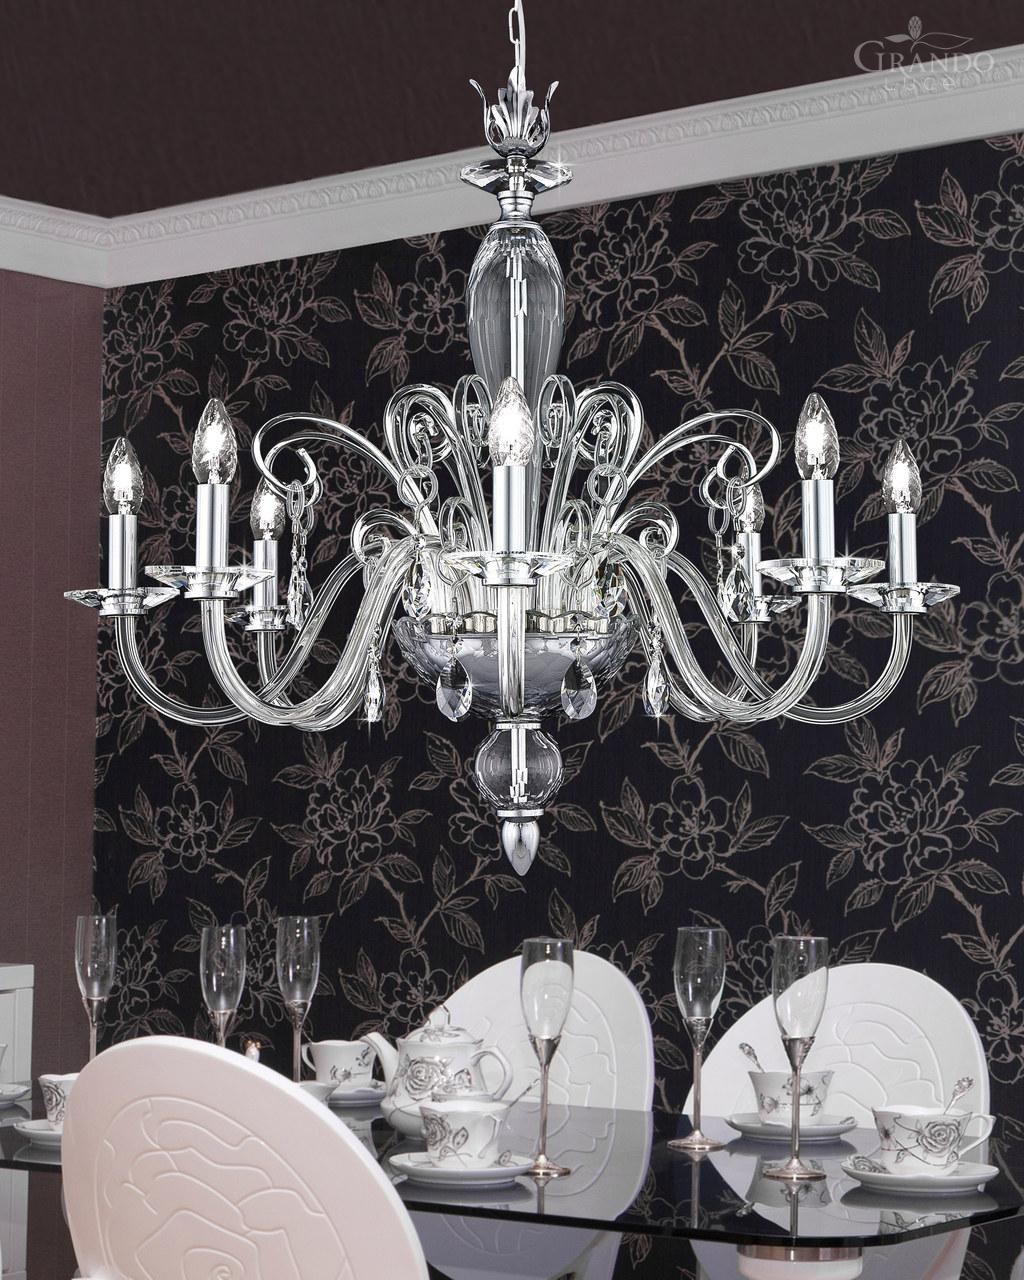 1208 Ch Chrome Crystal Chandelier With Swarovski Elements Pertaining To Chrome Crystal Chandelier (Image 2 of 15)